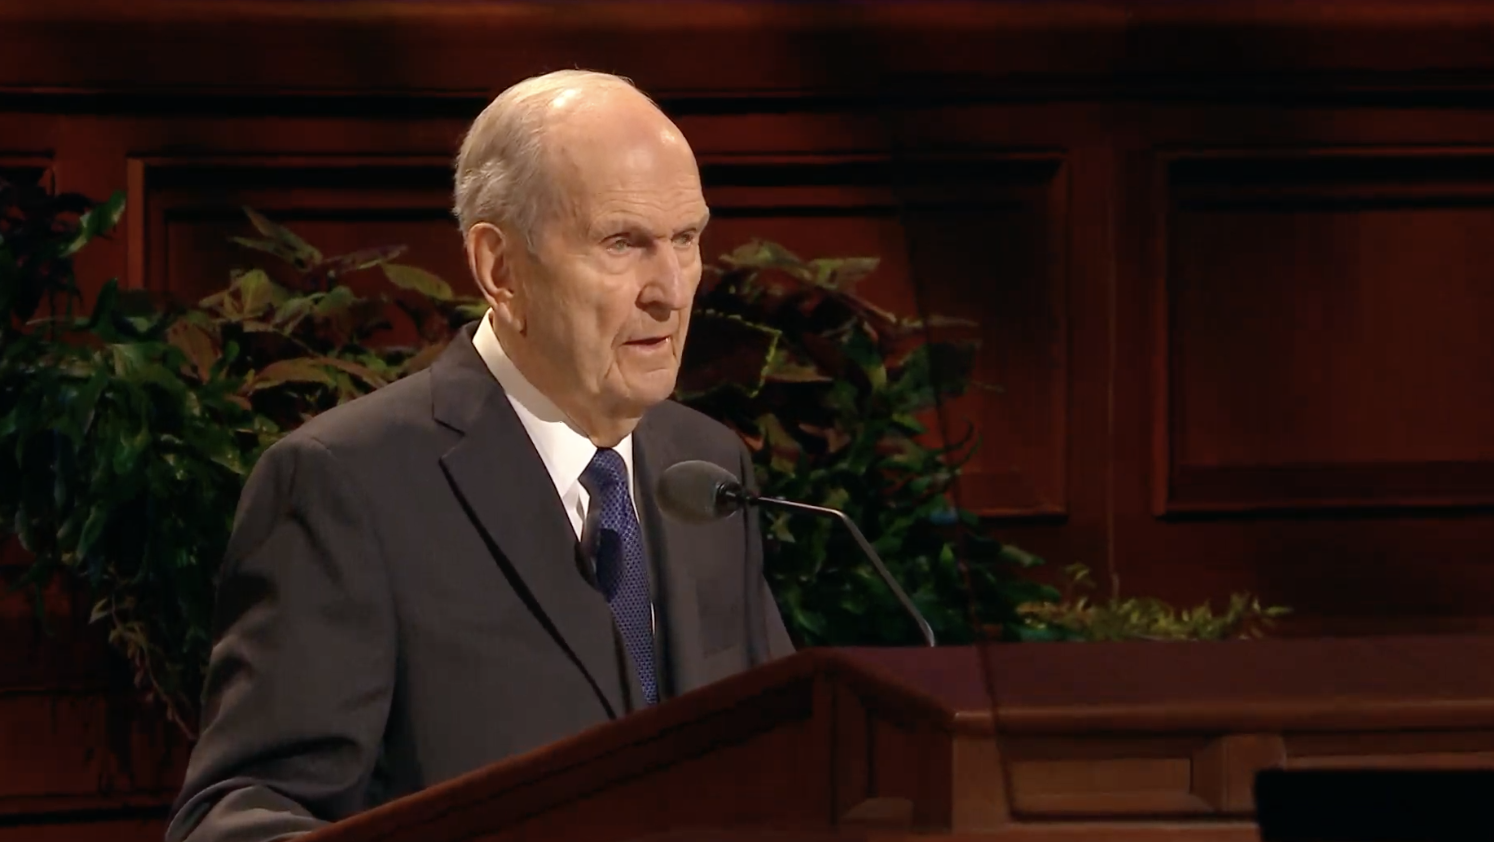 President Russell M. Nelson, president of the Church, speaks during the Sunday morning session in the 189th Semiannual General Conference of the Church on Oct. 6, 2019.